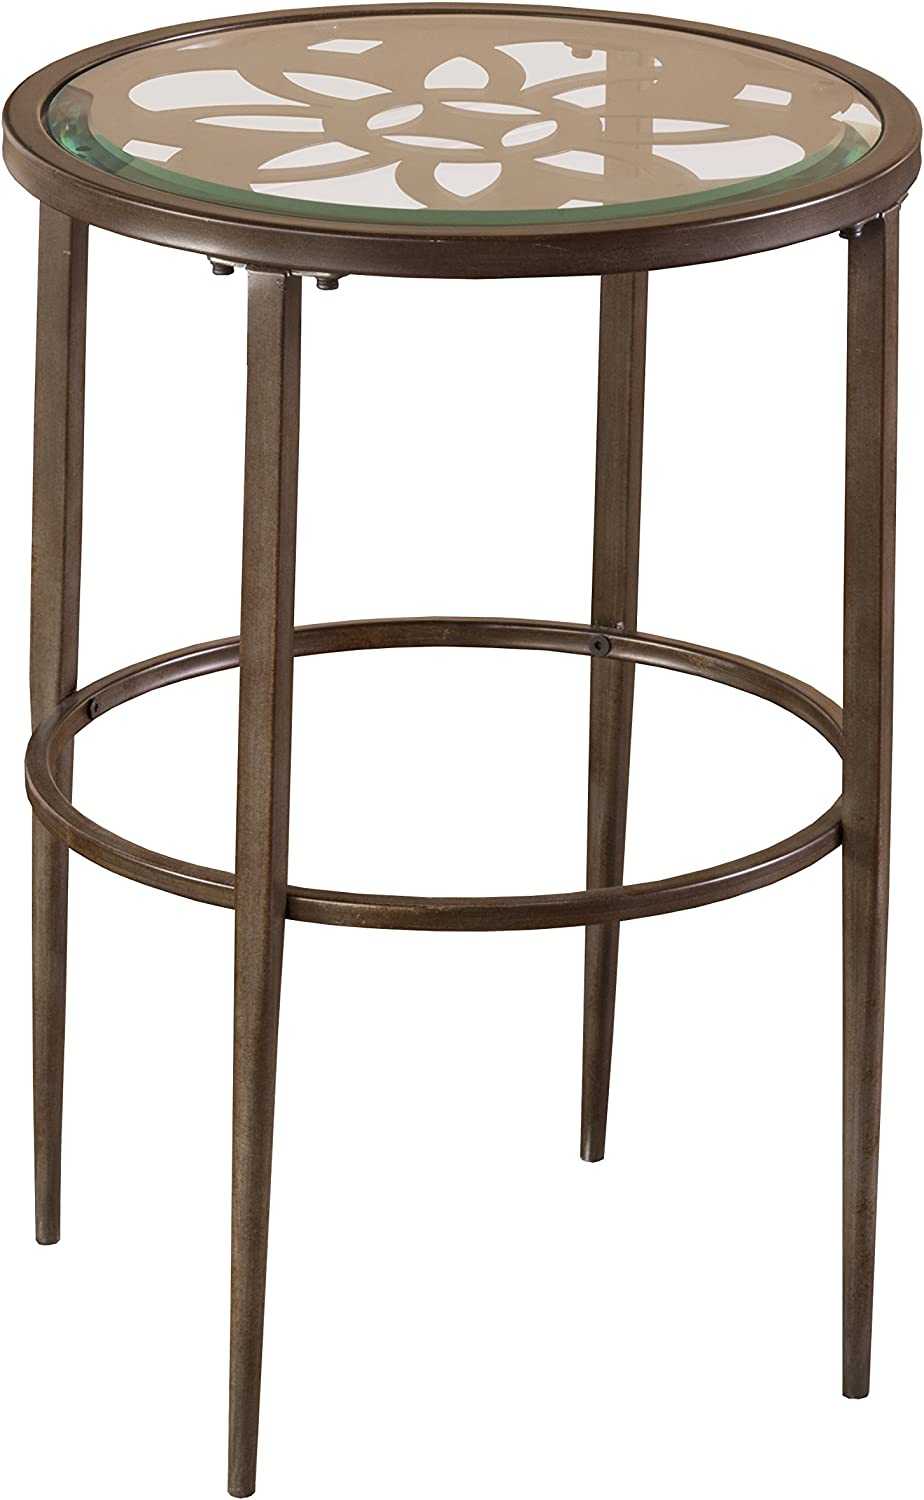 """Hillsdale 5497-880 Marsala End Table, 17.25"""", Gray Finish with Rubbed Brown Accents"""